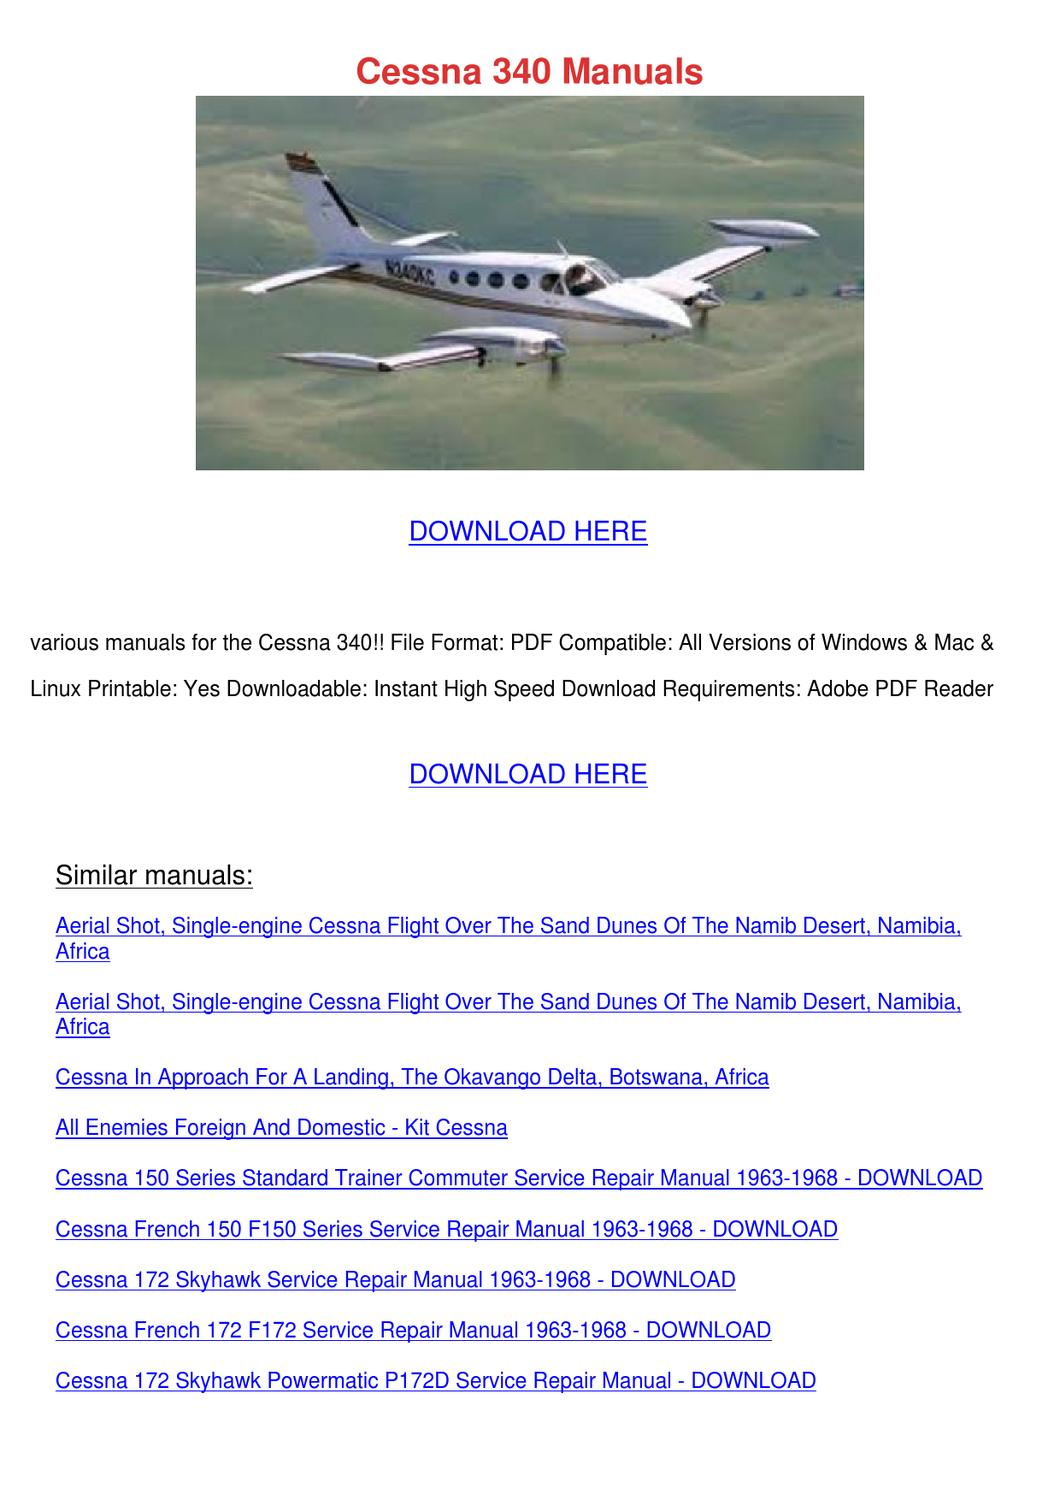 Cessna 340 Manuals by EdisonCrespo - issuu